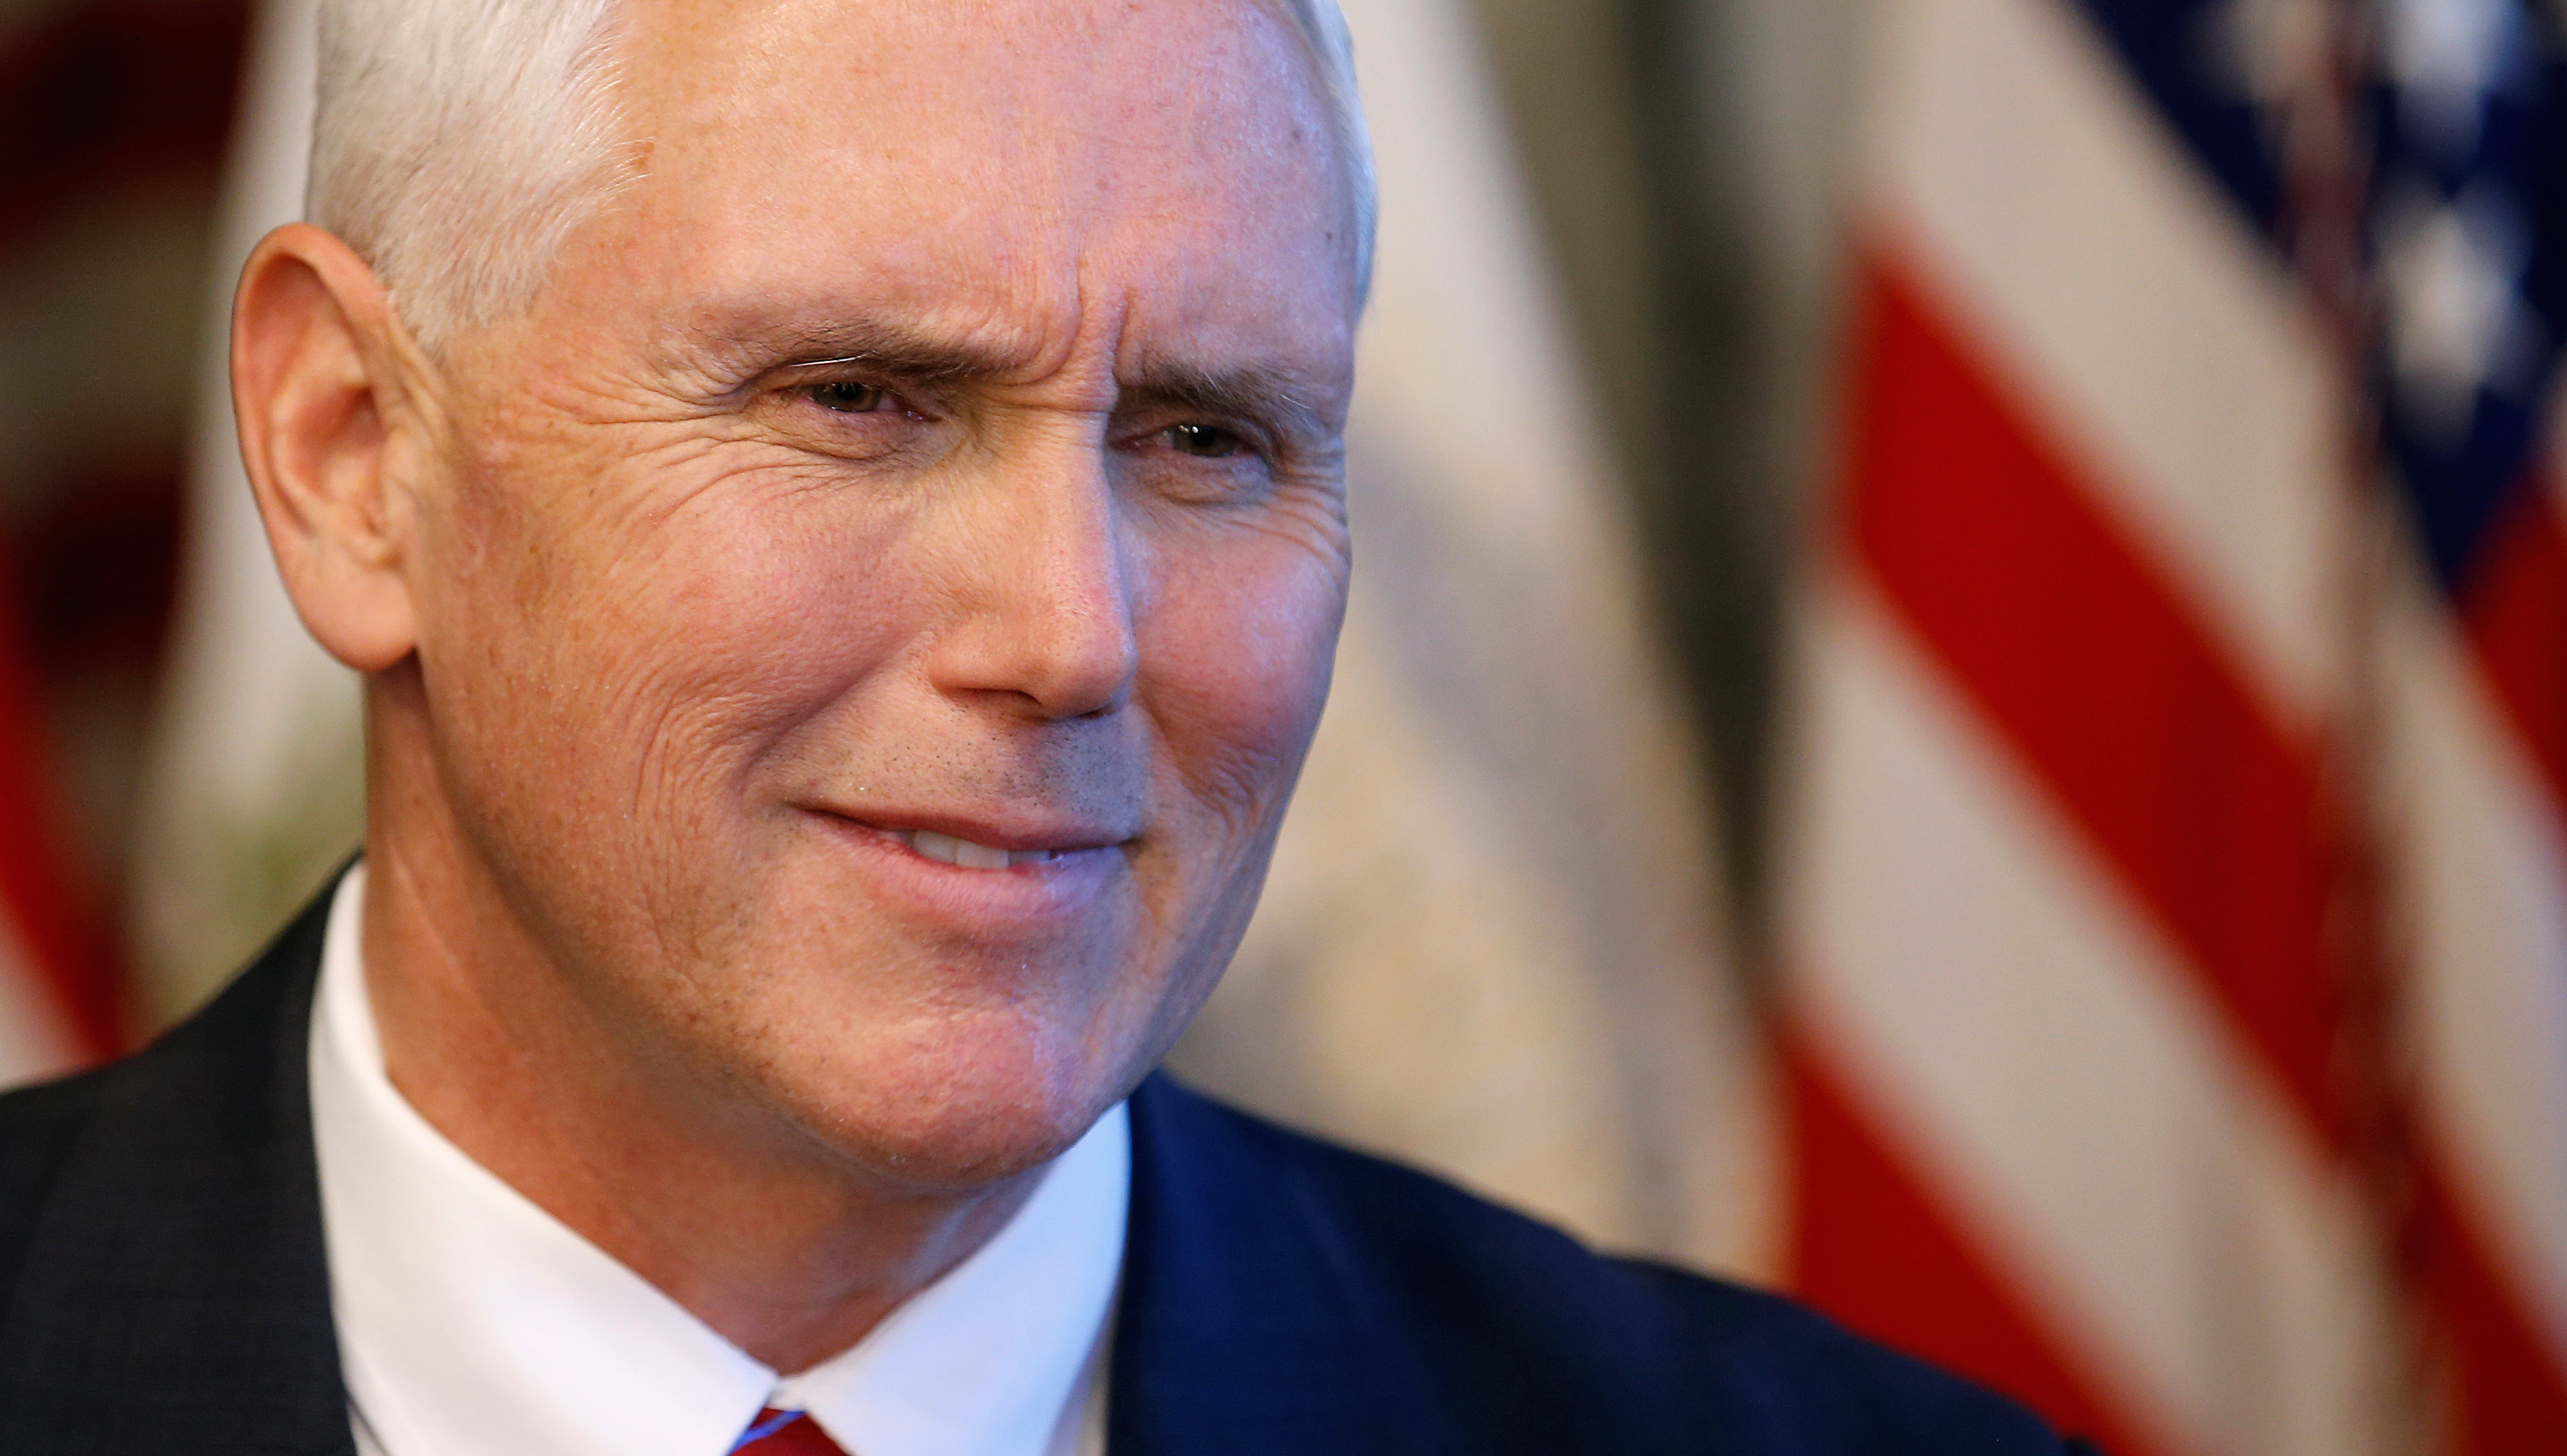 Will Donald Trump get impeached? Mike Pence would not be a better ...